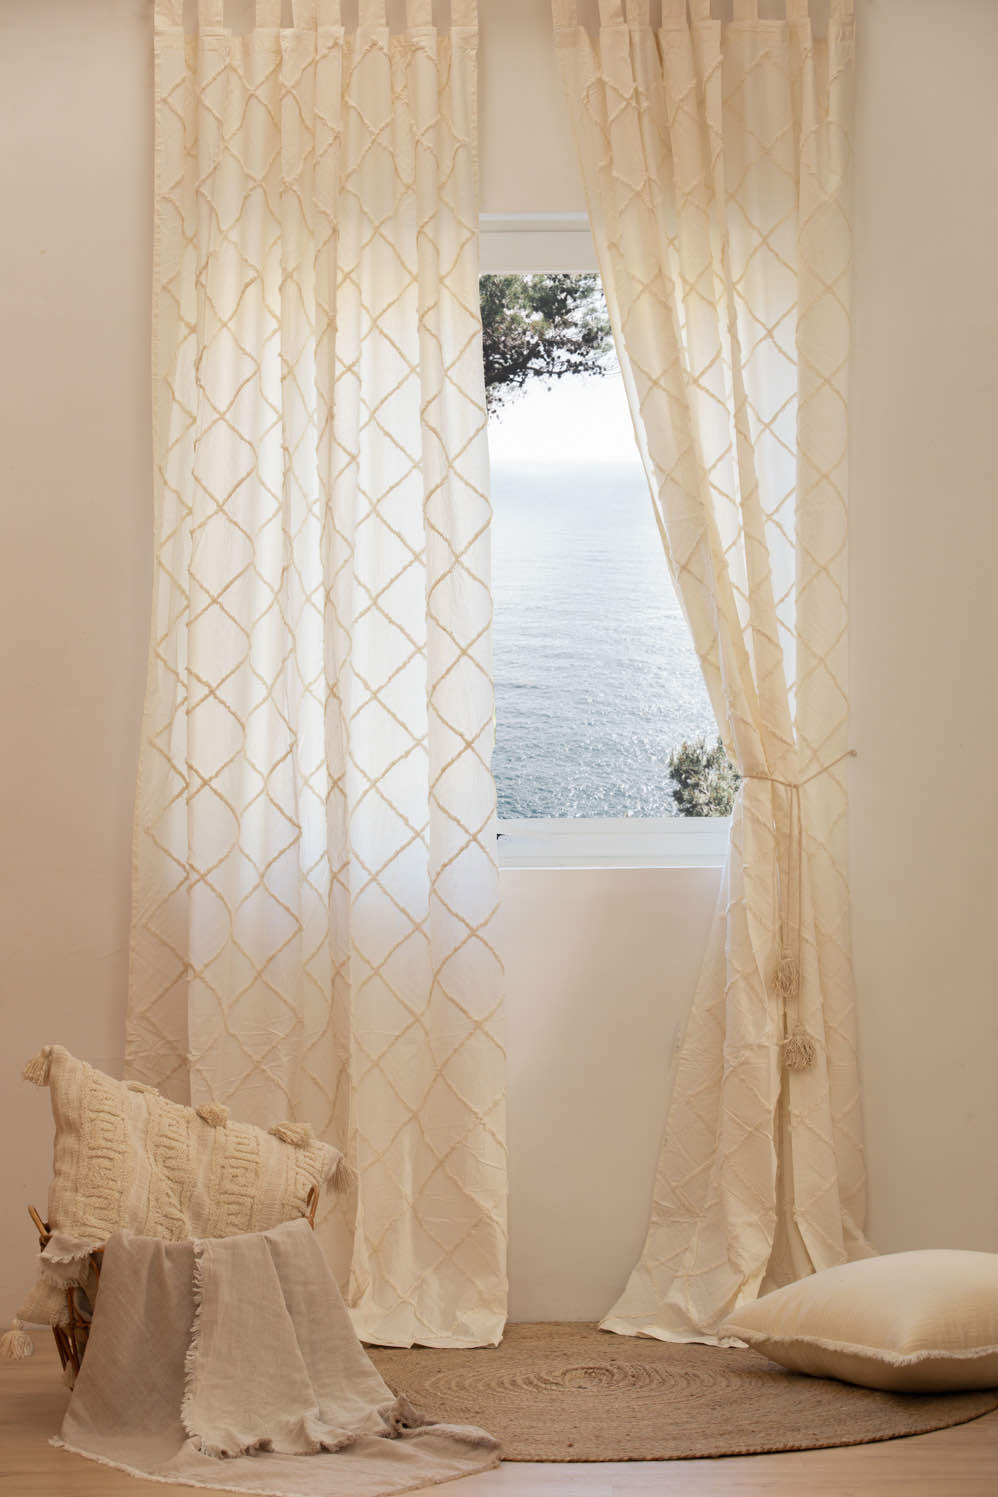 Curtain DUERO white